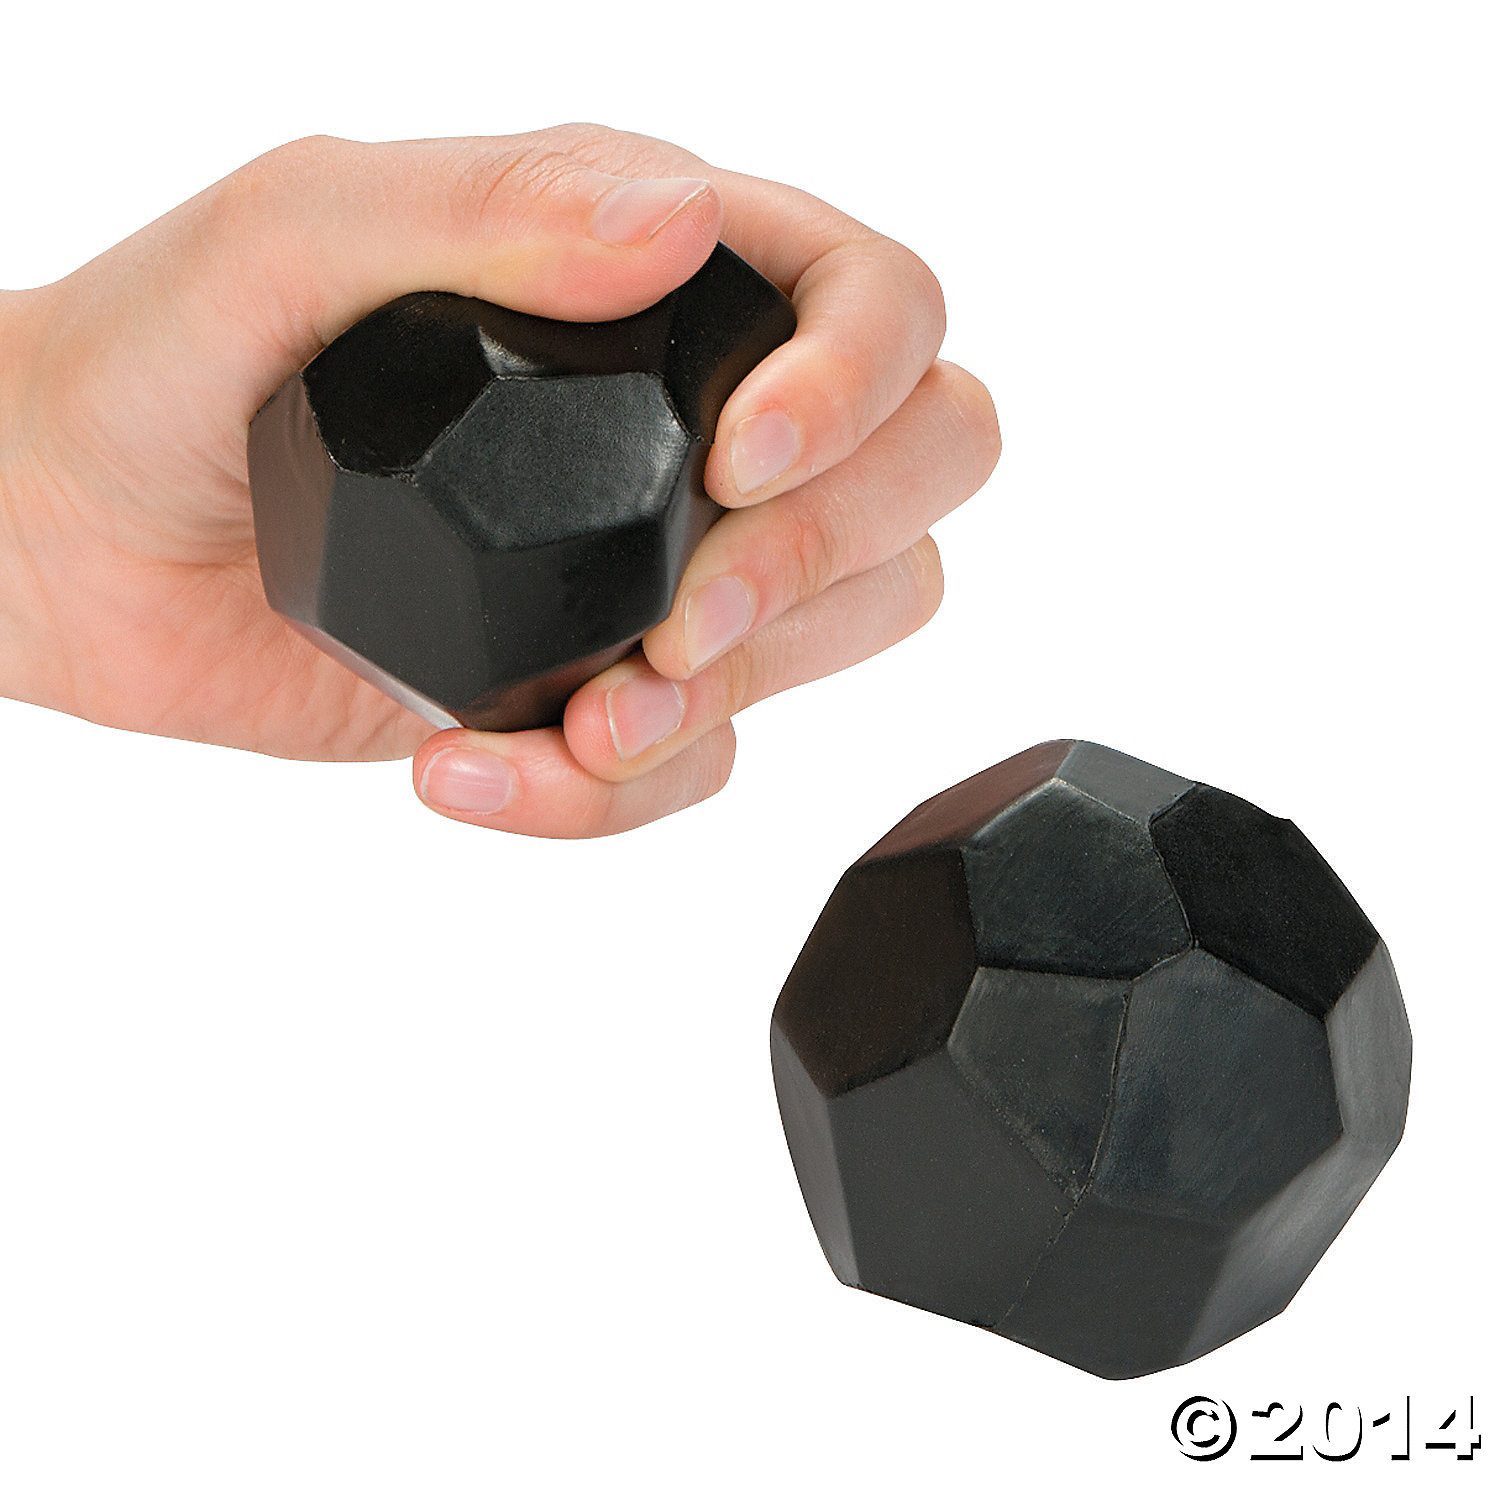 Foam Lump of Coal Stress Balls